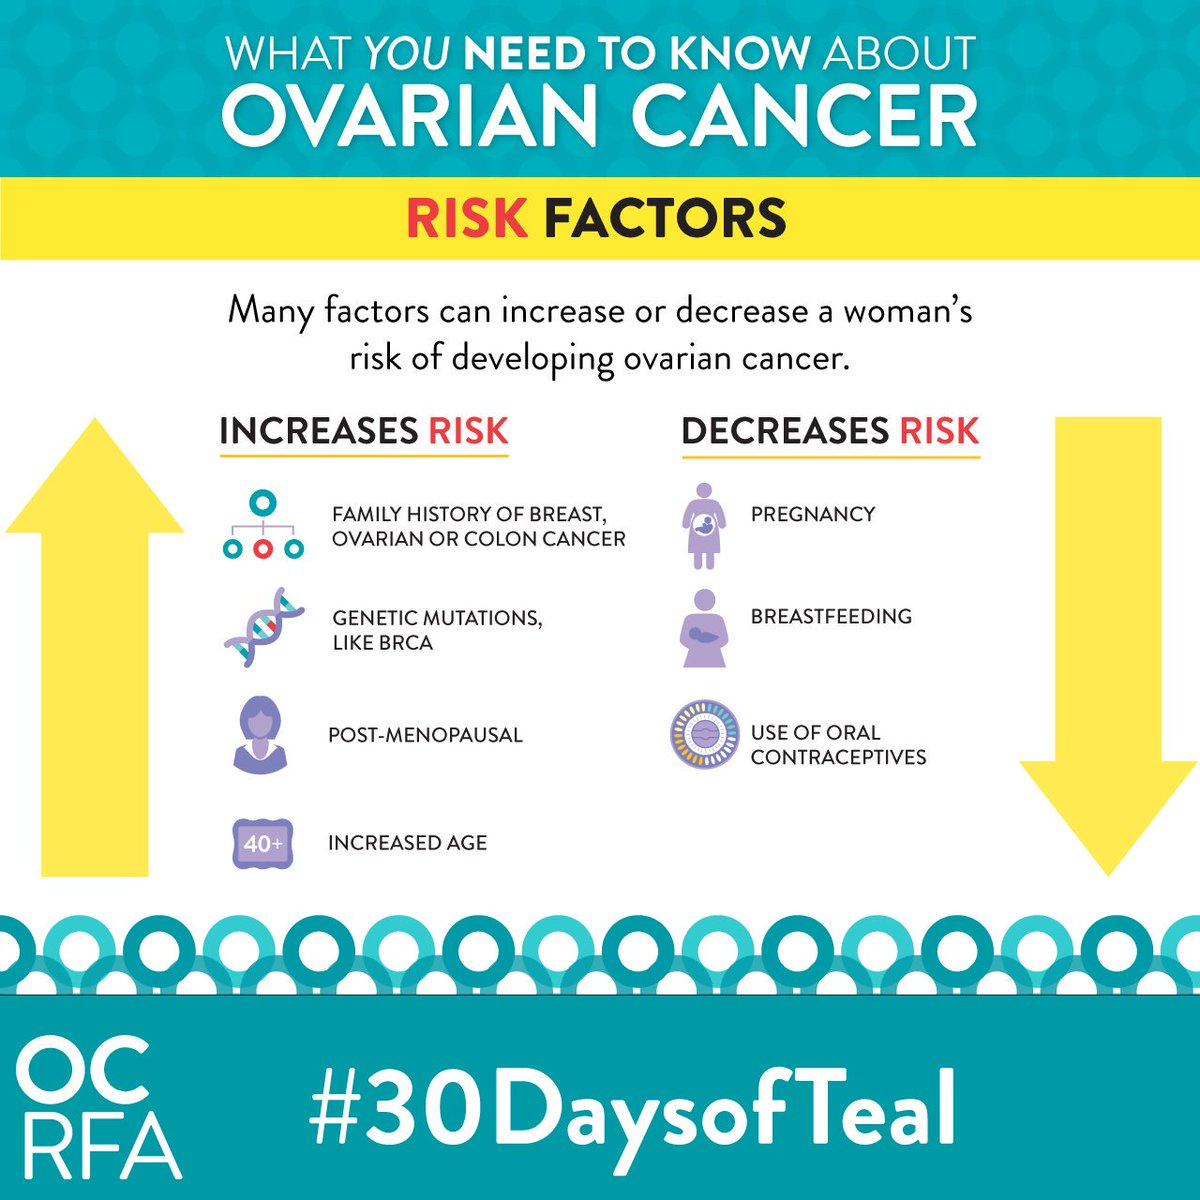 Ovarian Cancer Research Alliance On Twitter 1 In 75 Women Will Develop Ovariancancer In Her Lifetime Rt To Raise Awareness Full Infographic Https T Co Zwyobnxgfp 30daysofteal Https T Co Zwk5owfwtd